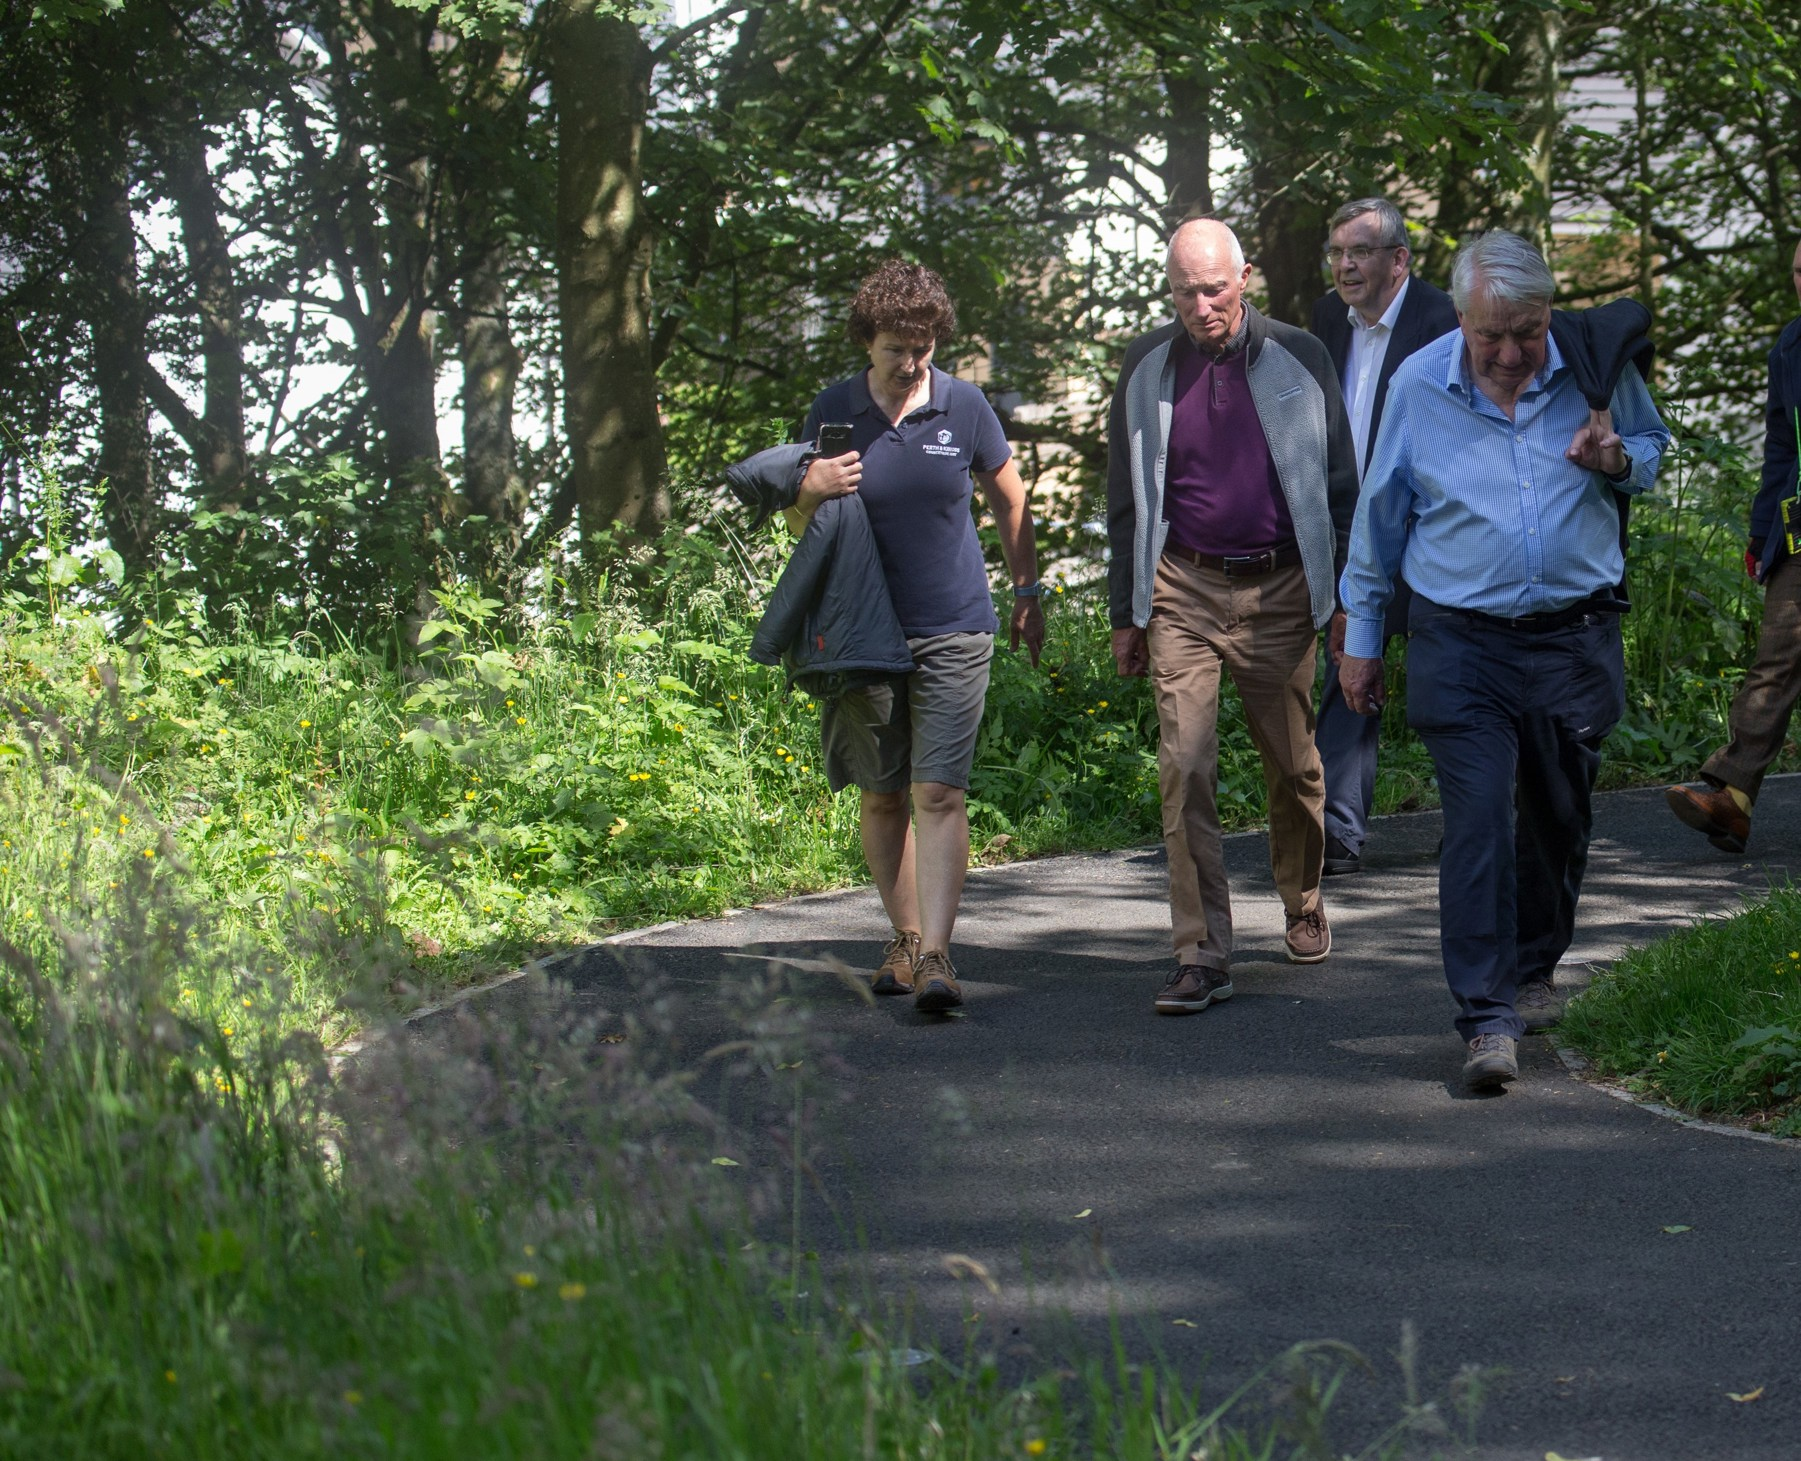 Three PKCT Trustees at Provost Walk Opening 3 July 2019  Left to right: Bid Strachan (PKCT Communities Officer) and PKCT Board members Cedric Wilkins (Chair), Cllr Stewart Donaldson and Alastair Dorward